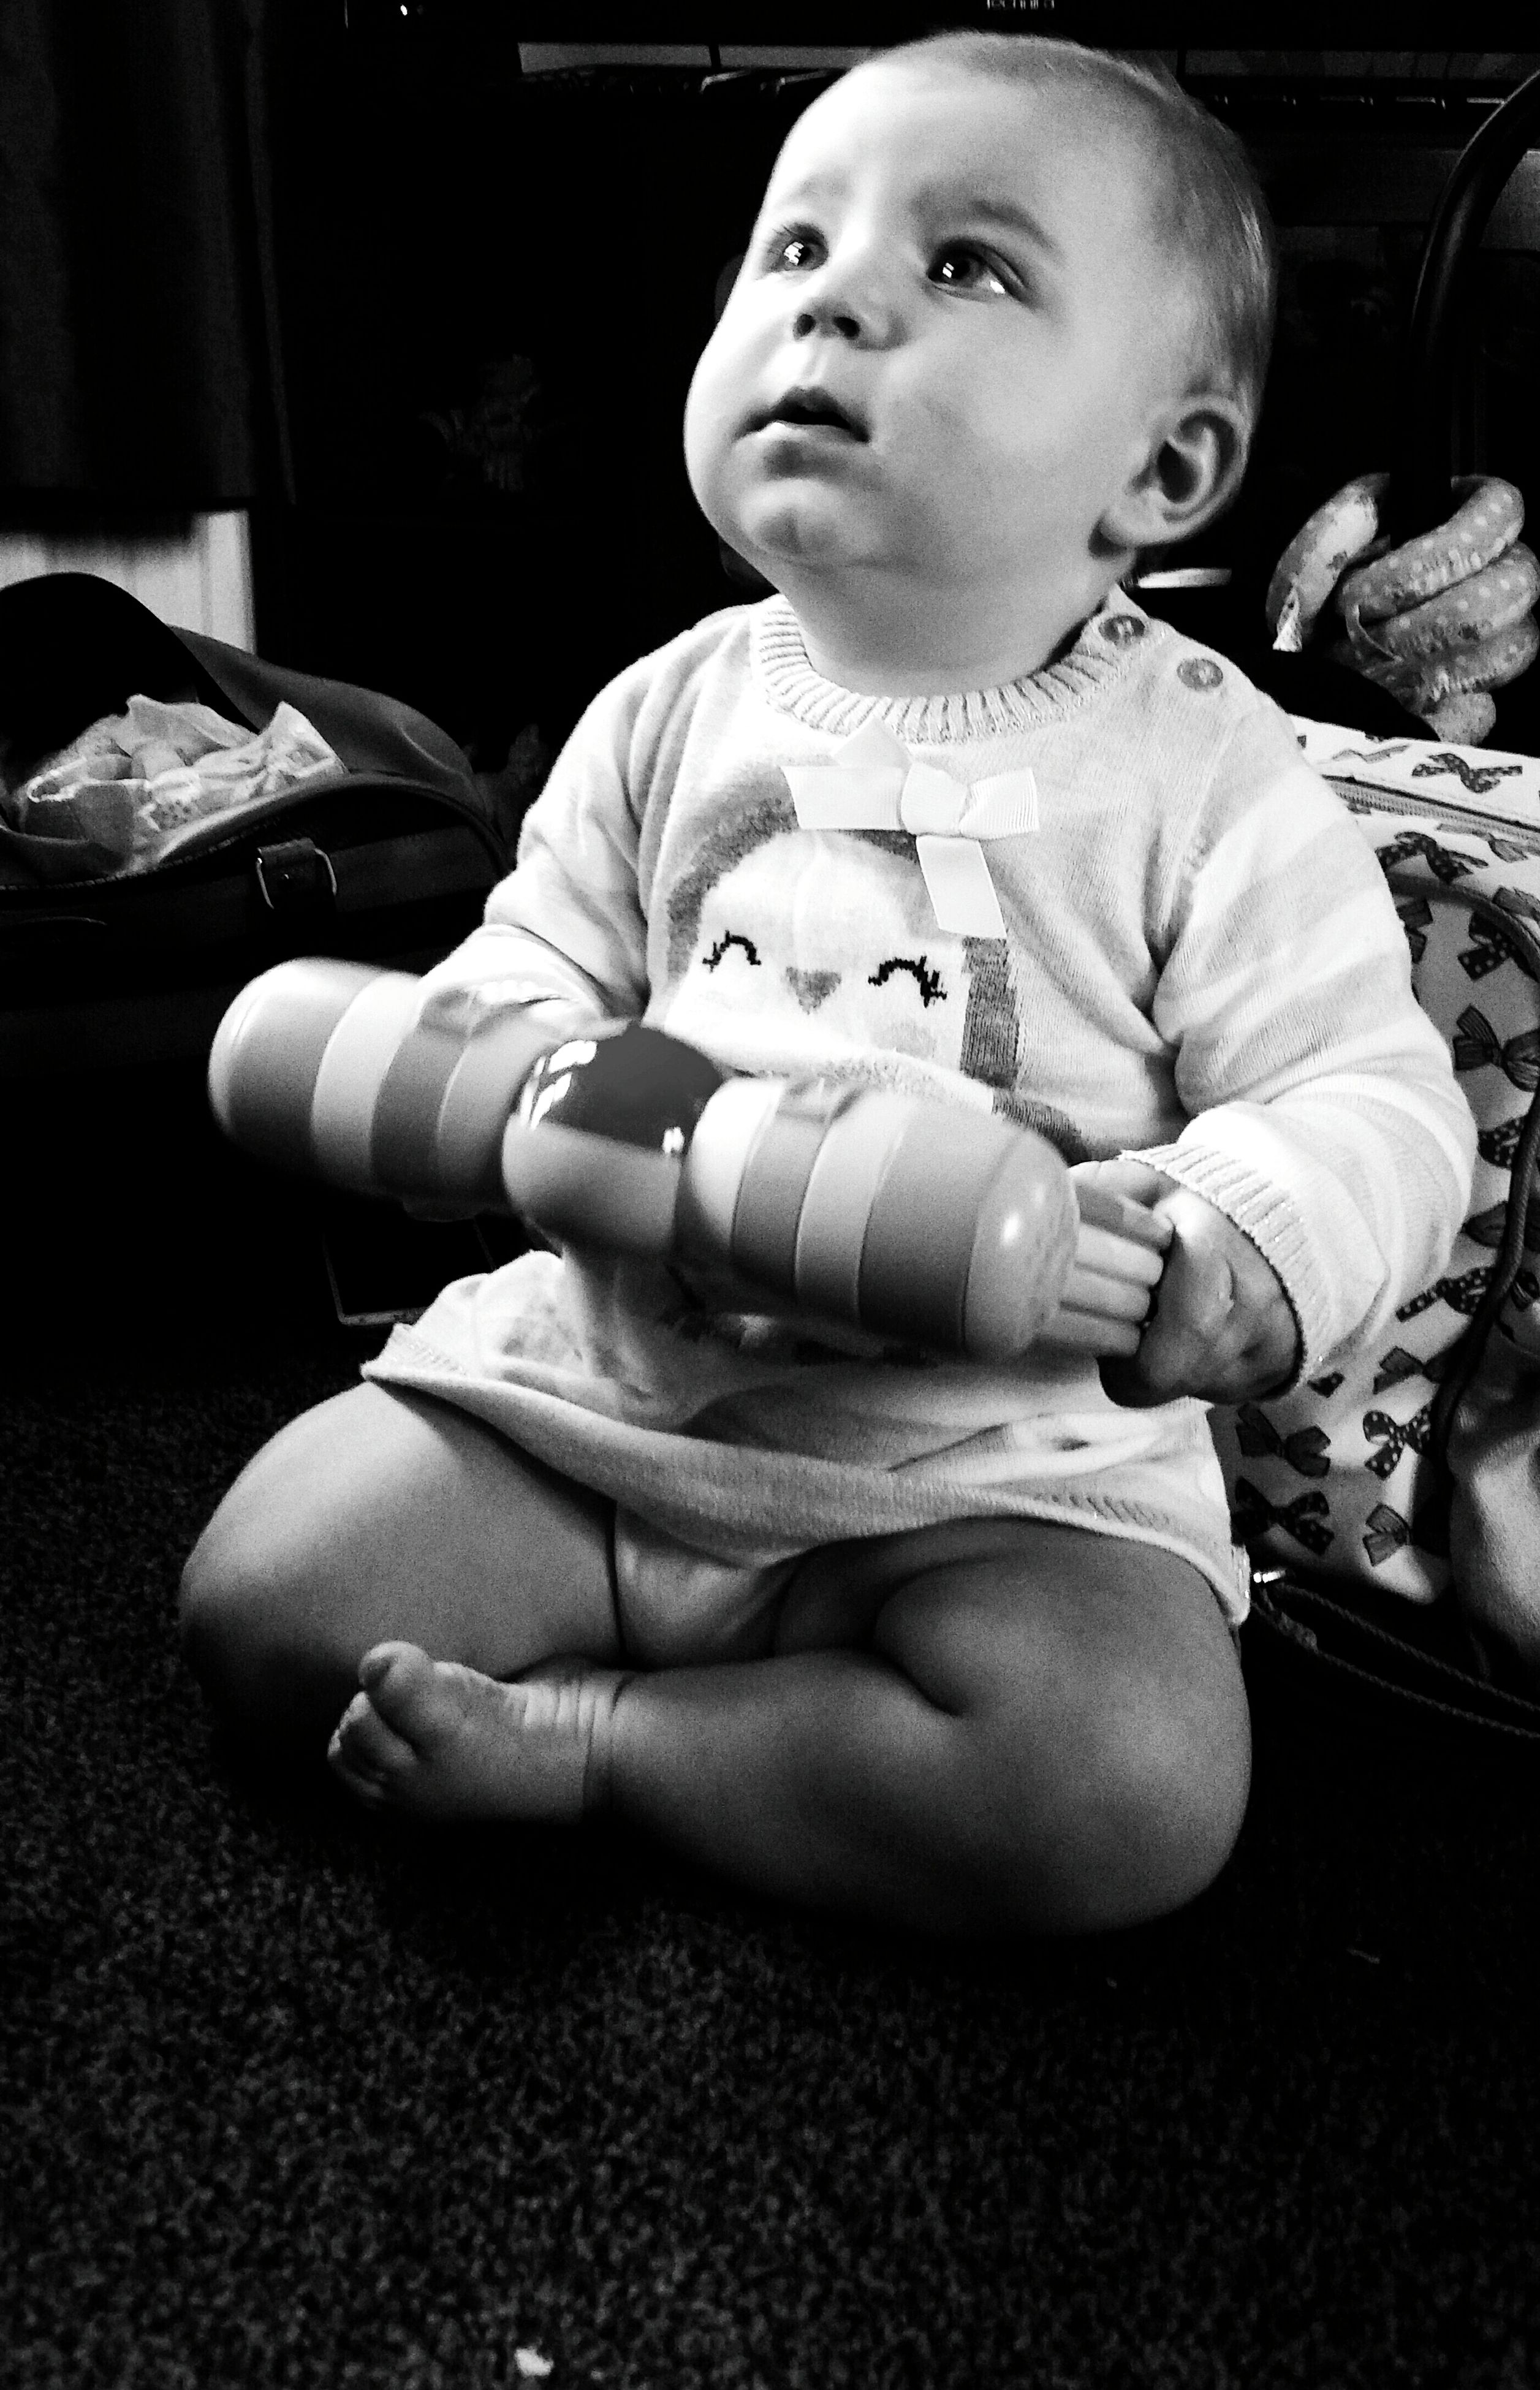 childhood, person, elementary age, innocence, casual clothing, cute, boys, lifestyles, sitting, leisure activity, full length, front view, toddler, holding, indoors, baby, preschool age, babyhood